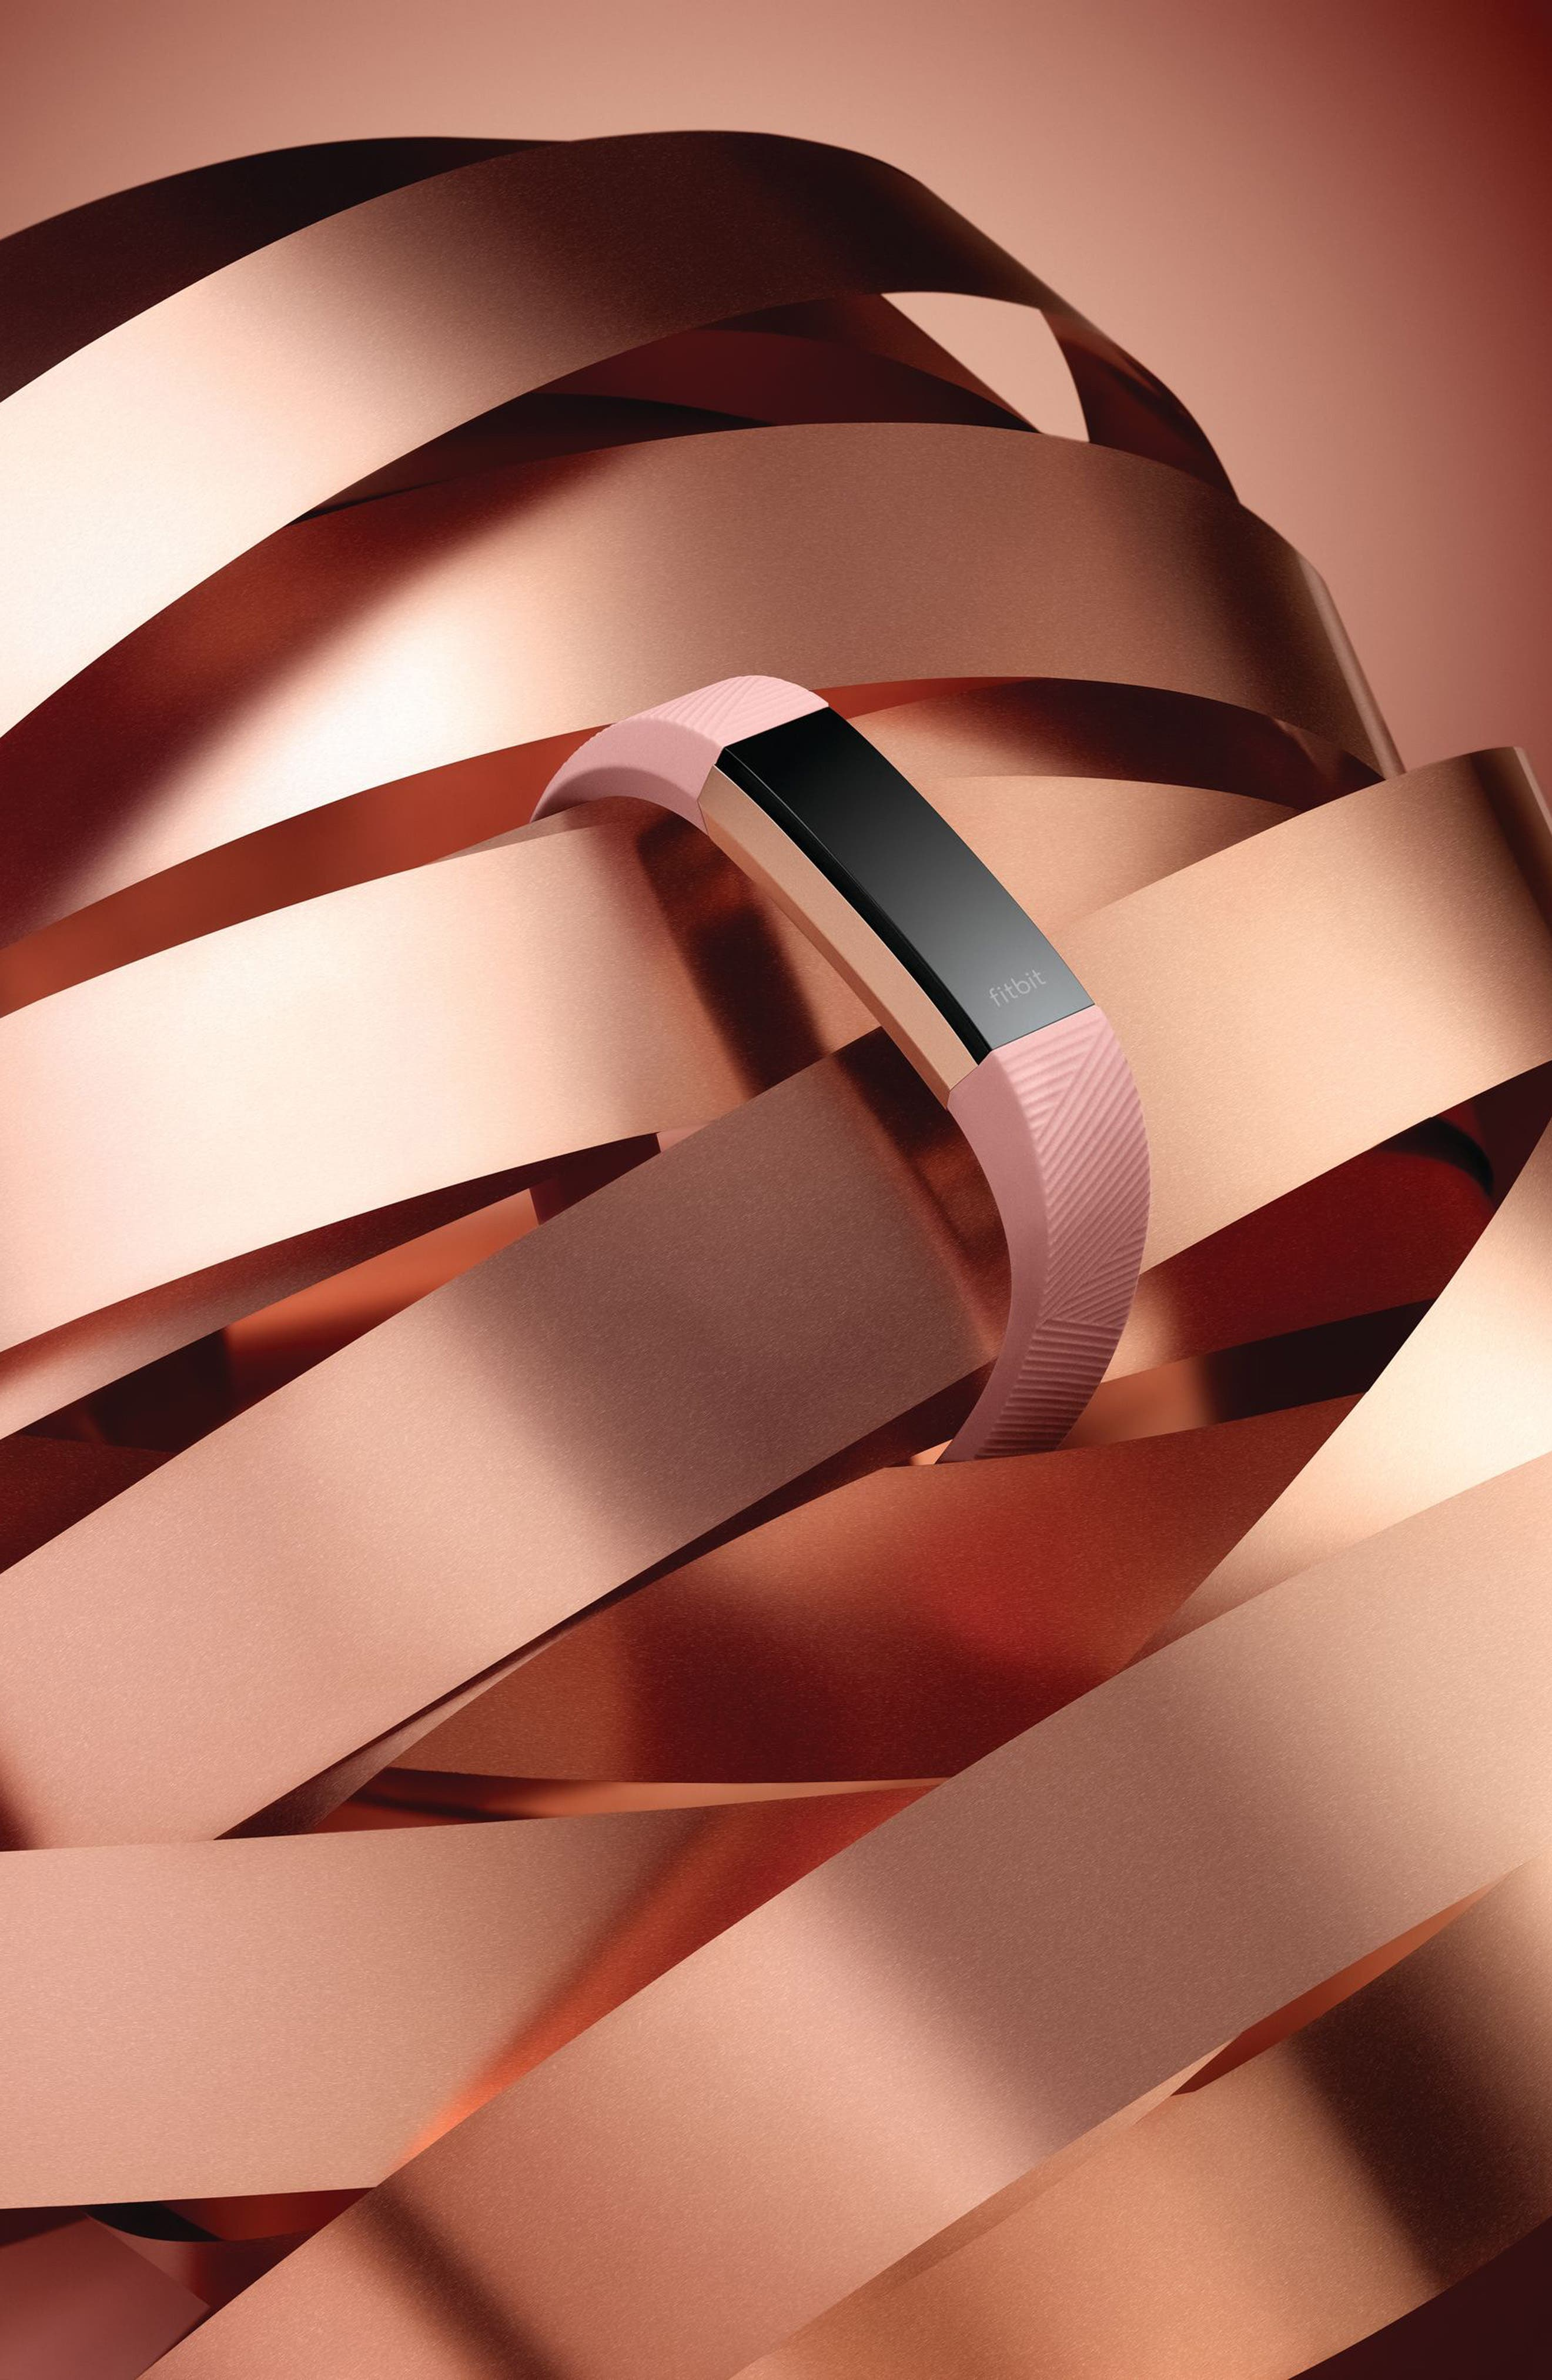 Special Edition Alta HR Wireless Heart Rate and Fitness Tracker,                             Alternate thumbnail 4, color,                             PINK ROSE GOLD